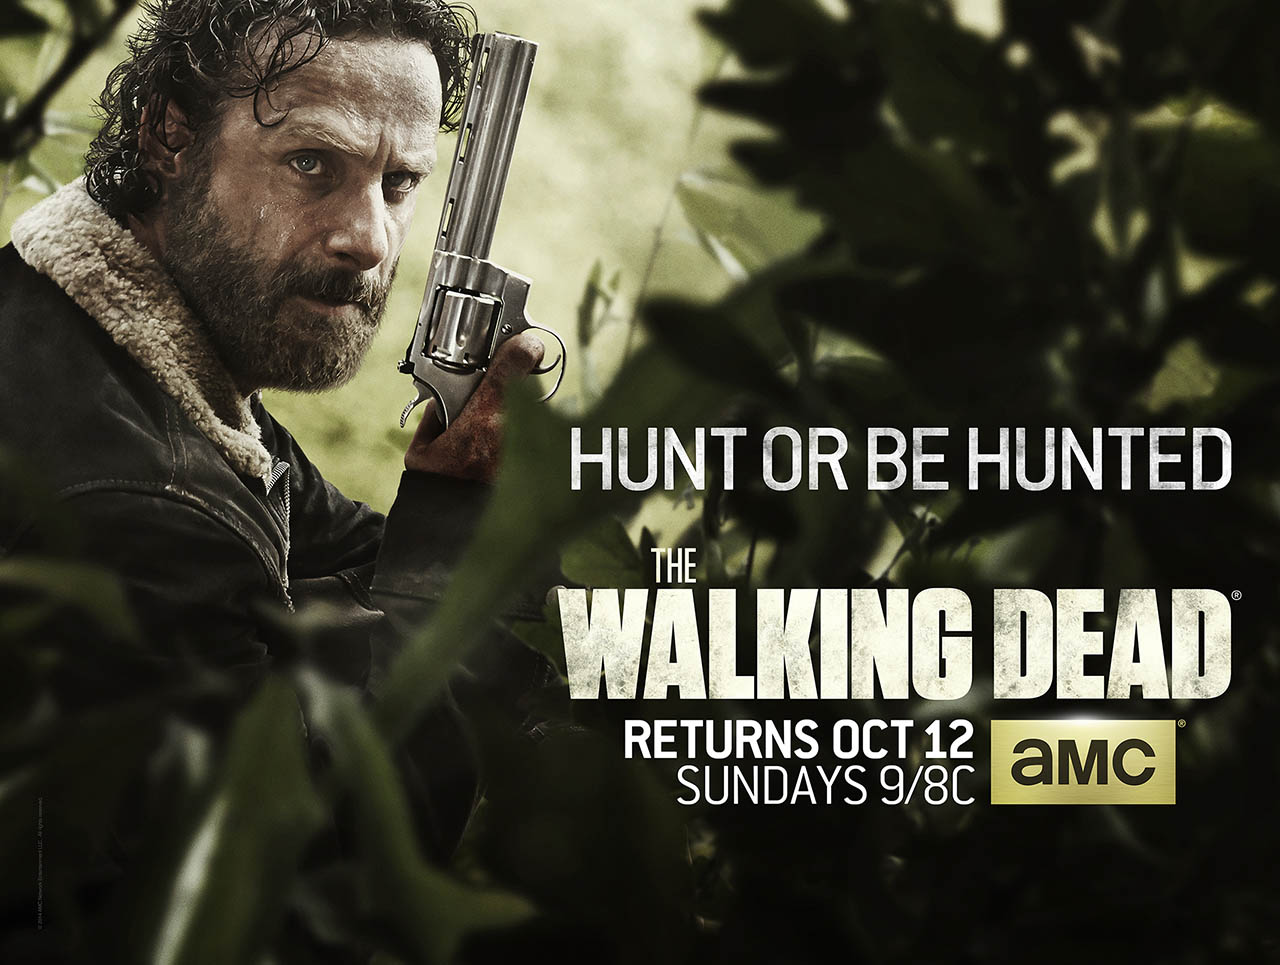 http://images.amcnetworks.com/blogs.amctv.com/wp-content/uploads/2014/09/The-Walking-Dead-Season-5-Key-Art-1280x965.jpg